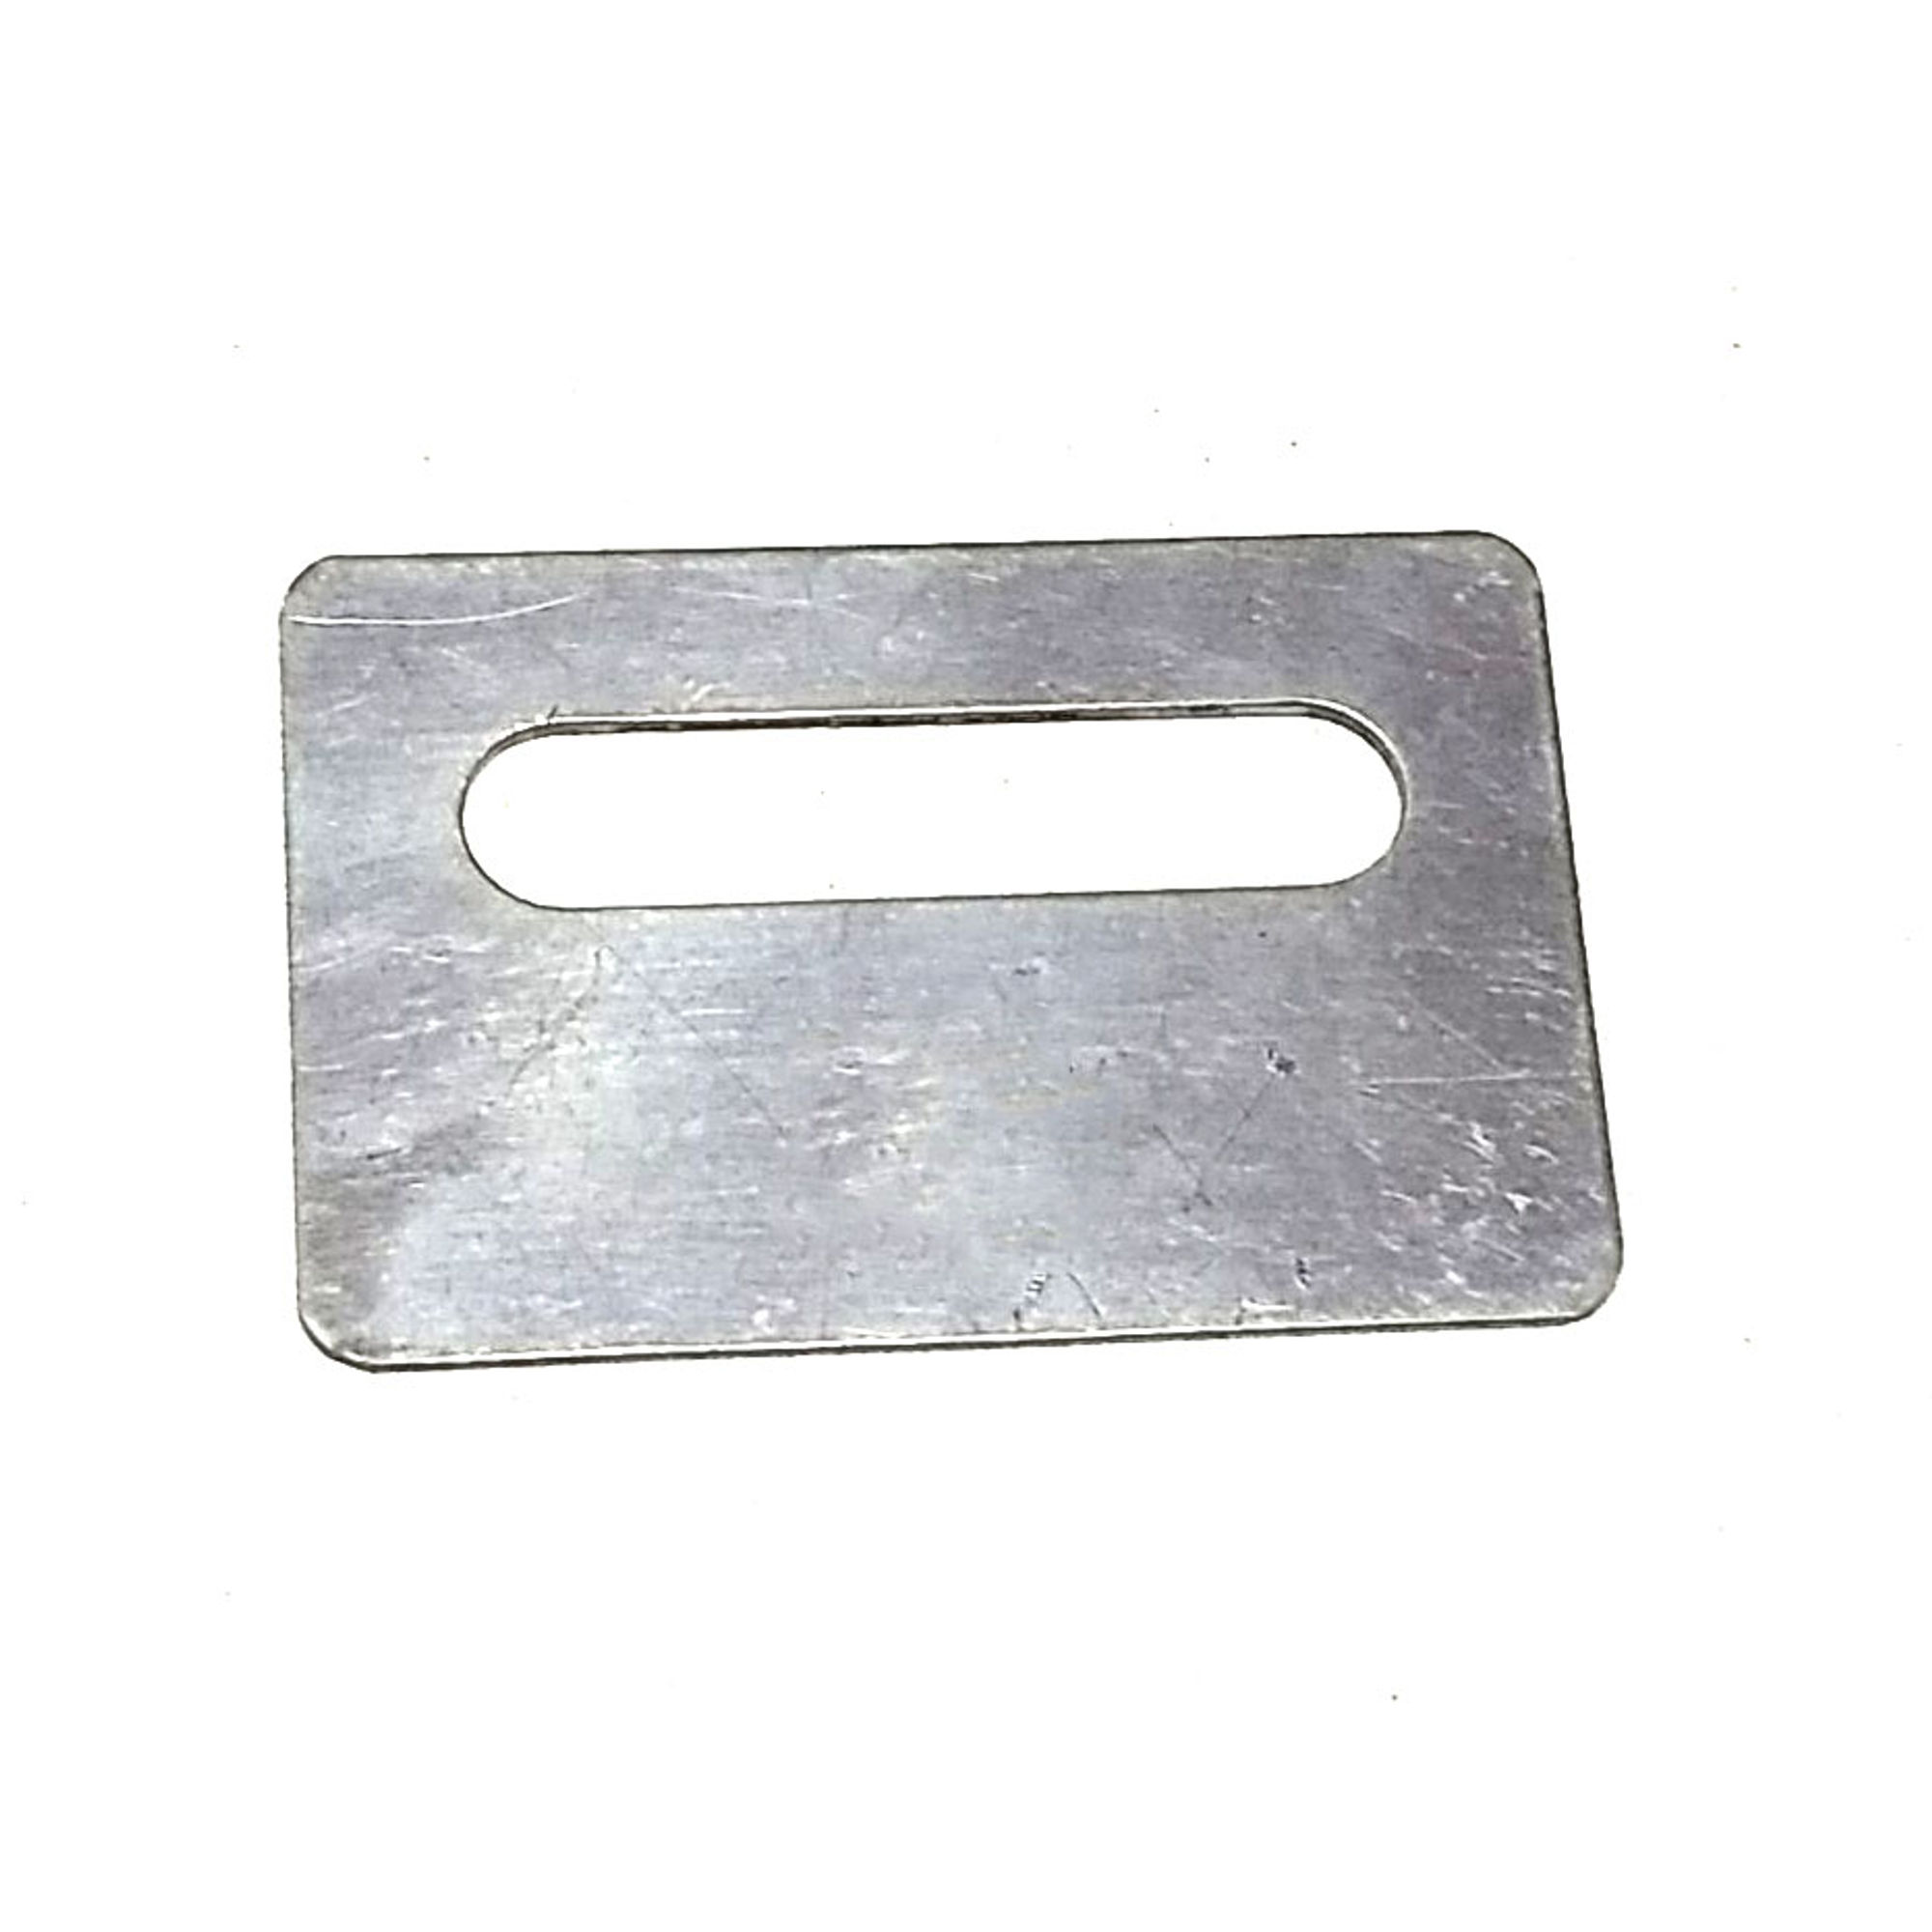 Signature Guide Plate for Visually Impaired